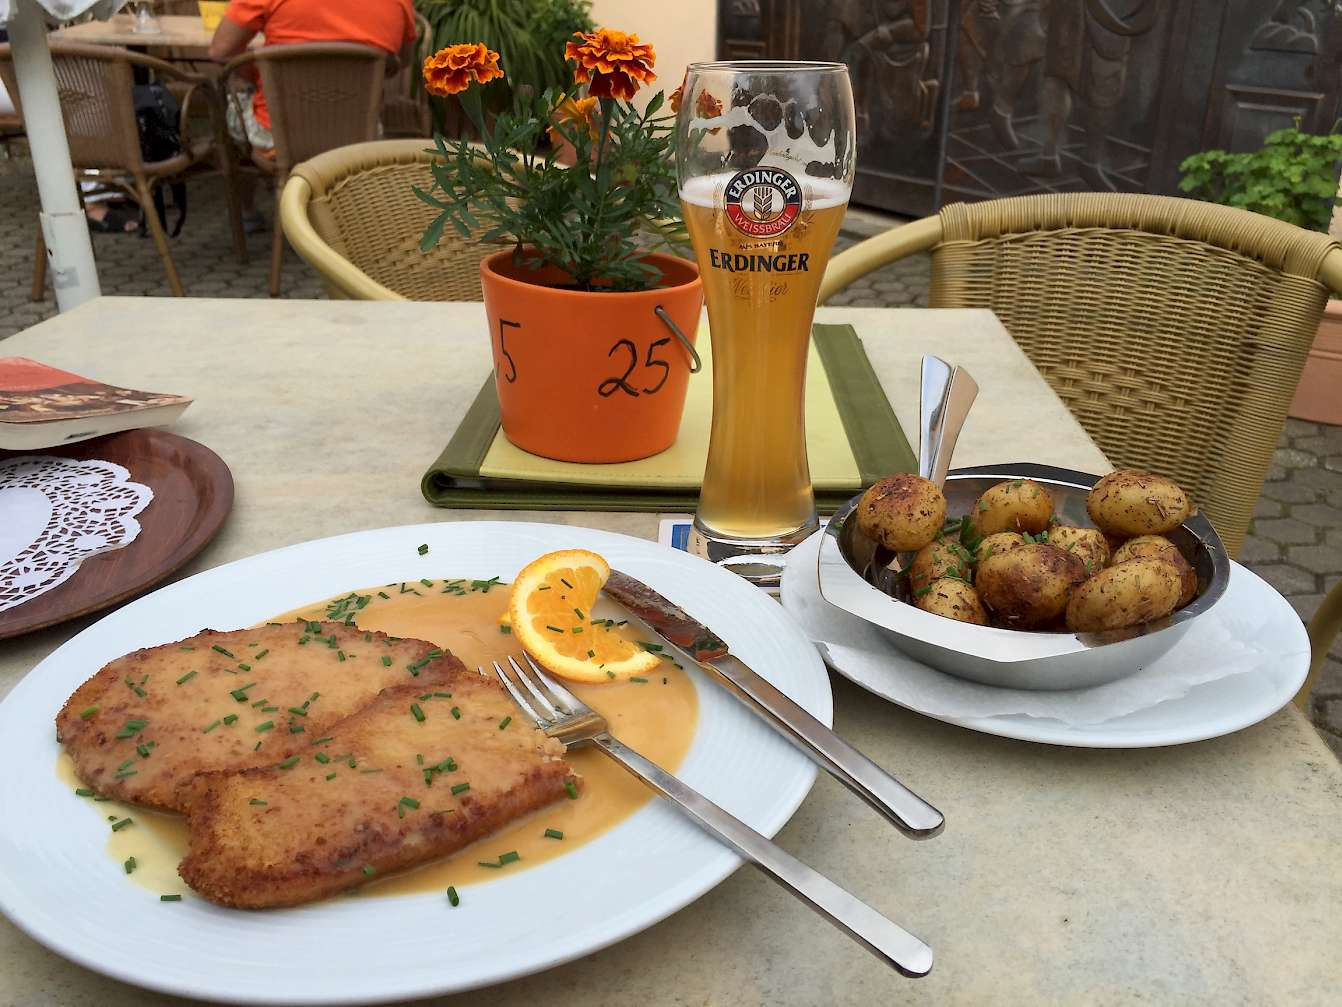 Schnitzel and beer